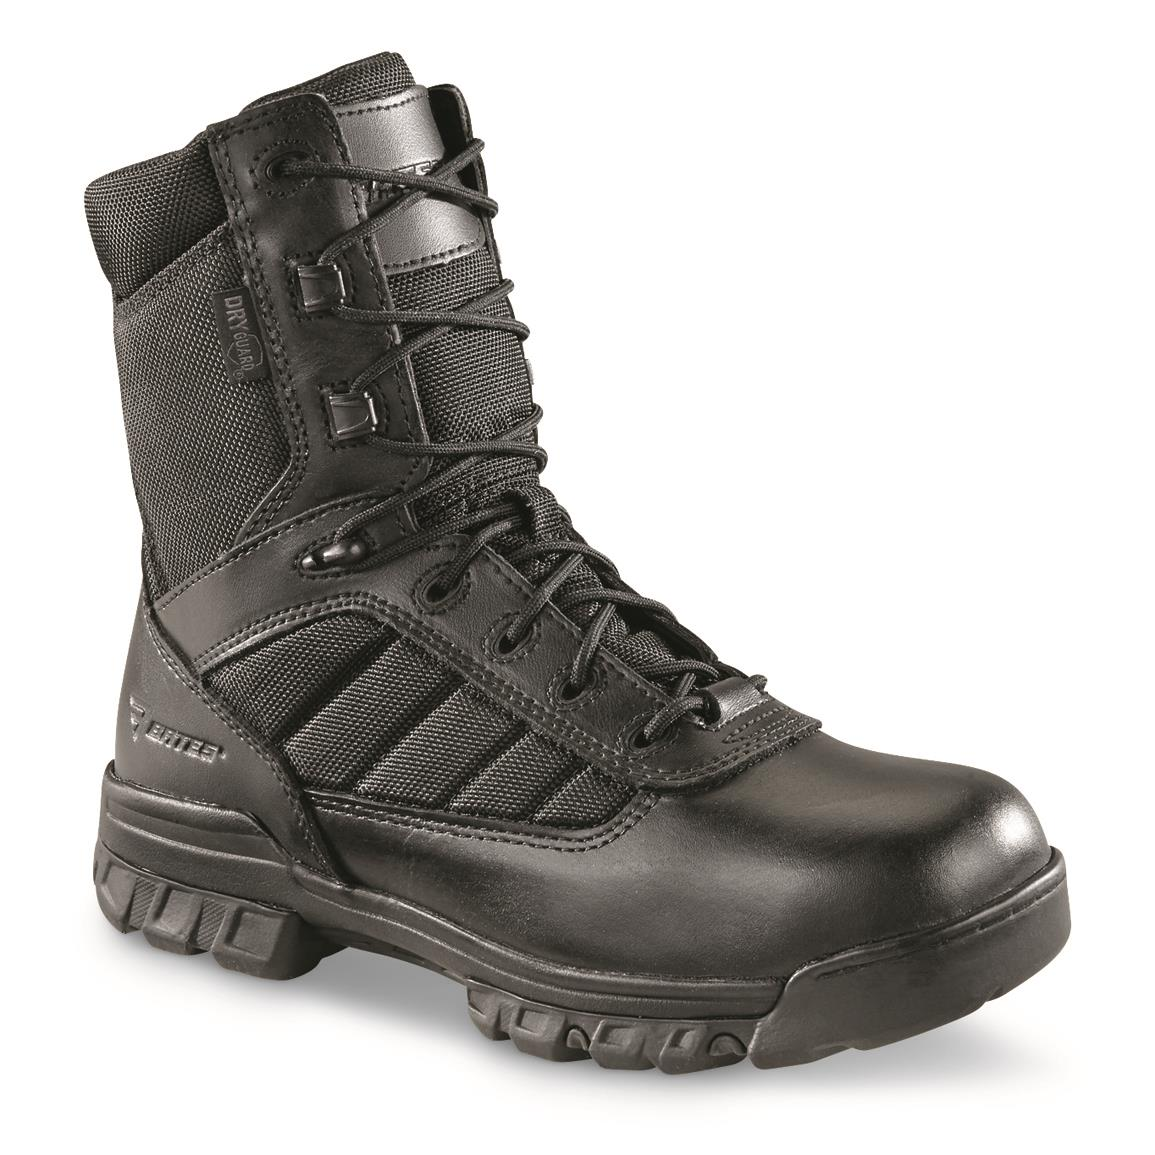 "Bates Men's Tactical Sport DRYGuard 8"" Waterproof Side-zip Duty Boots, Black"